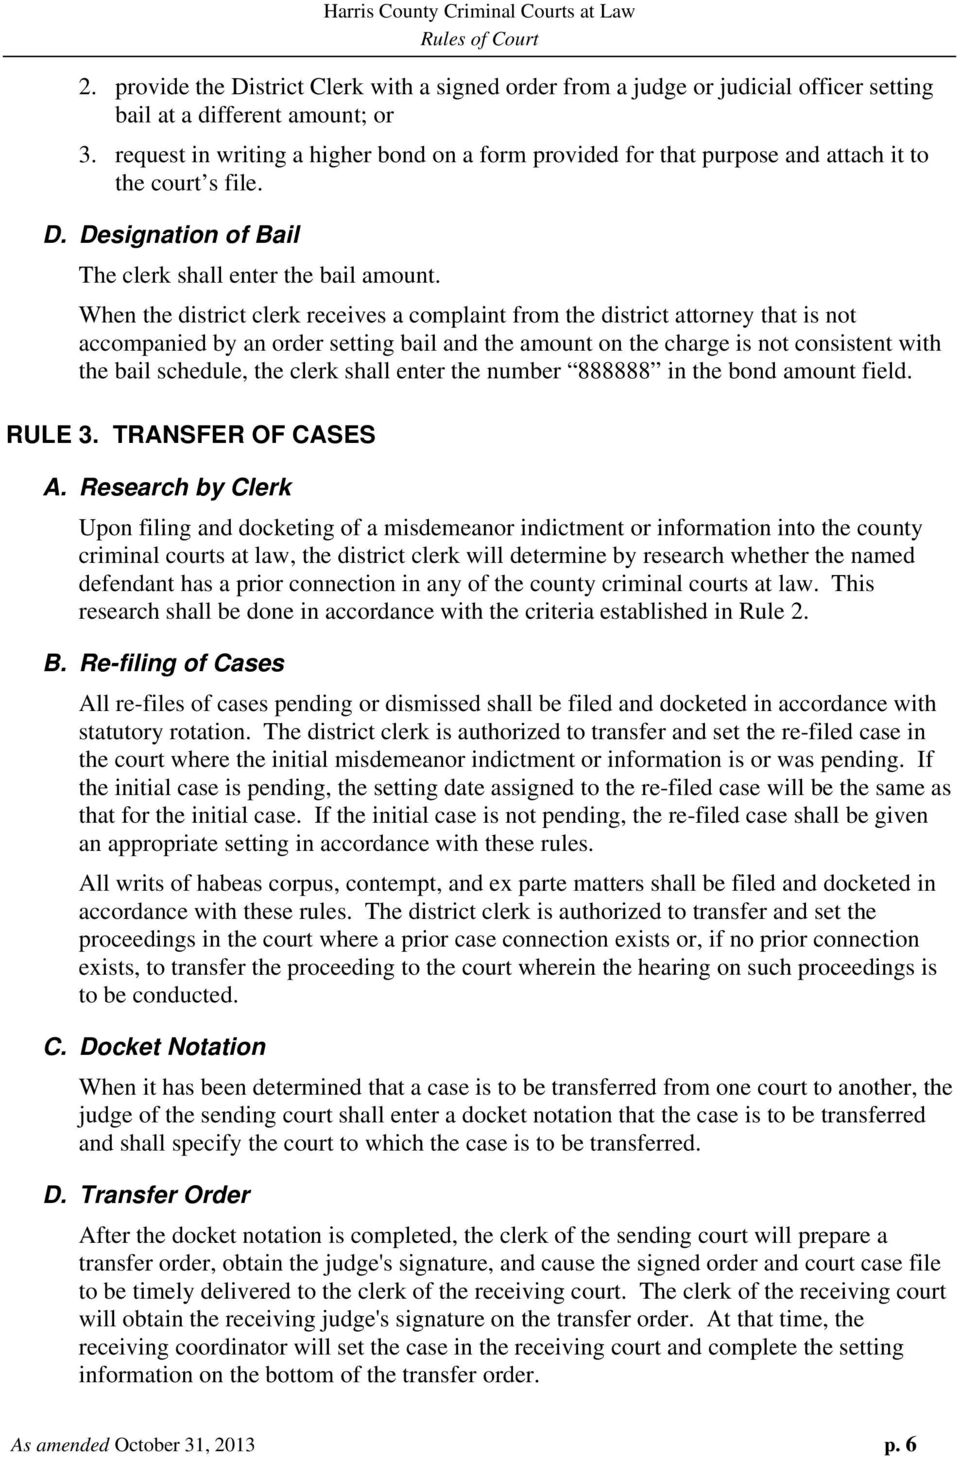 RULES OF COURT Harris County Criminal Courts at Law - PDF